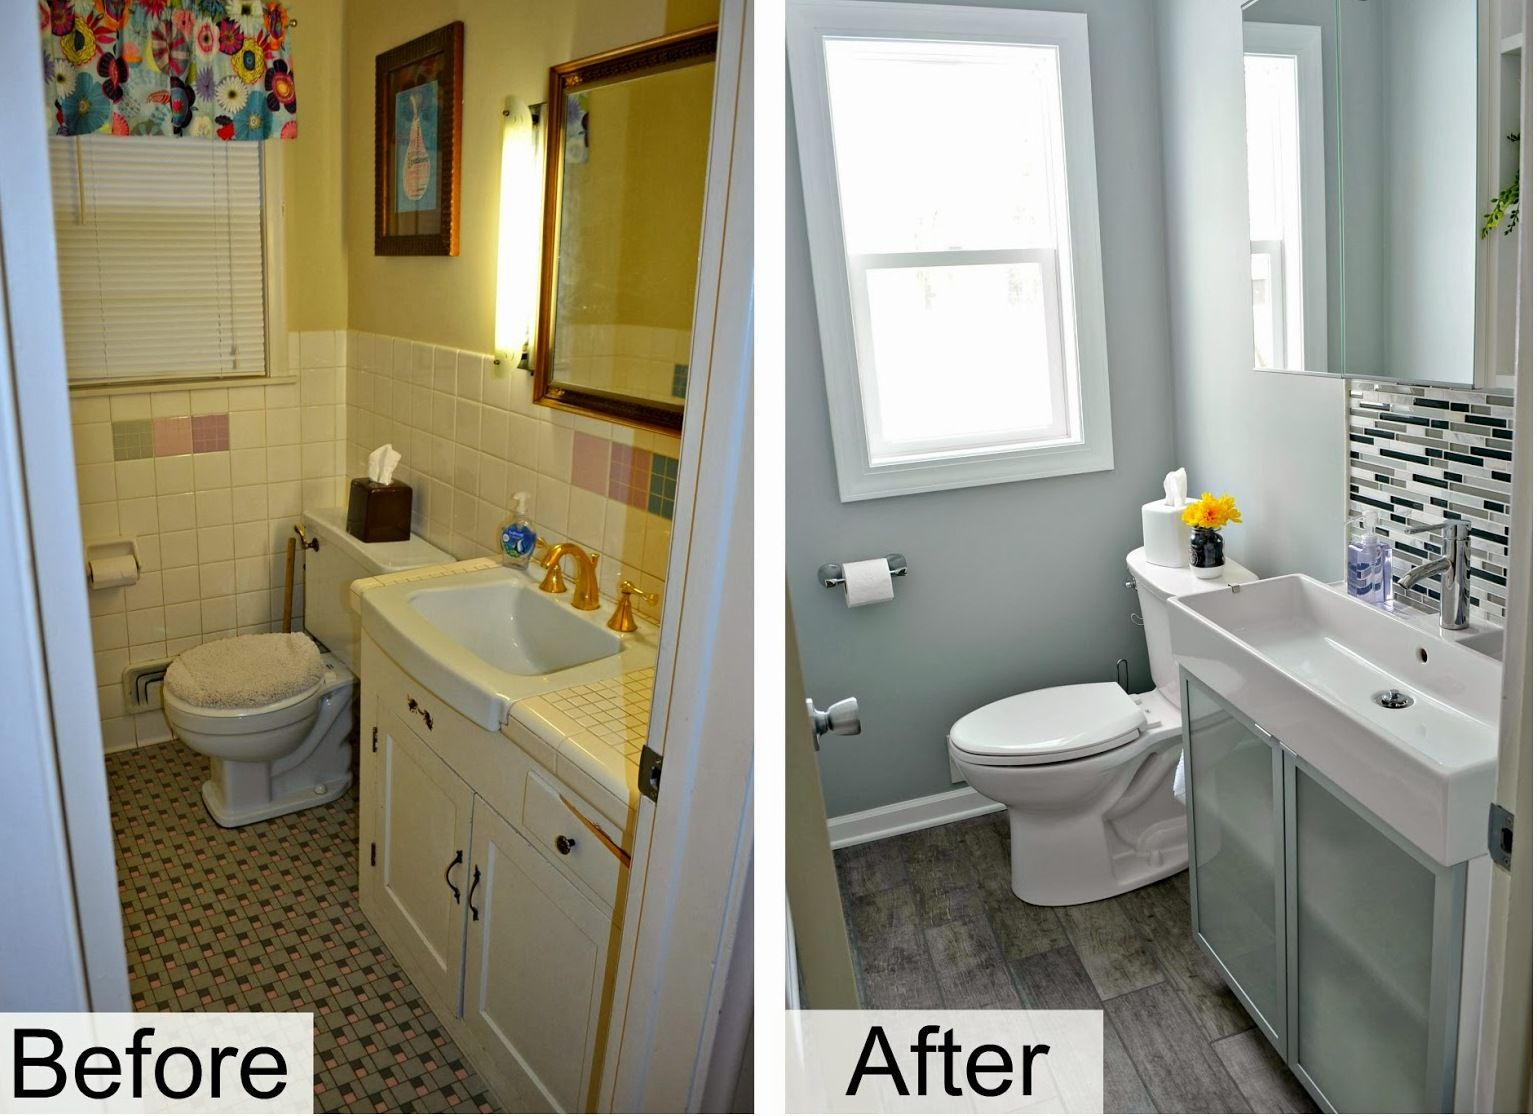 diy bathroom remodel ideas for average people - Bathroom Renovation Designs